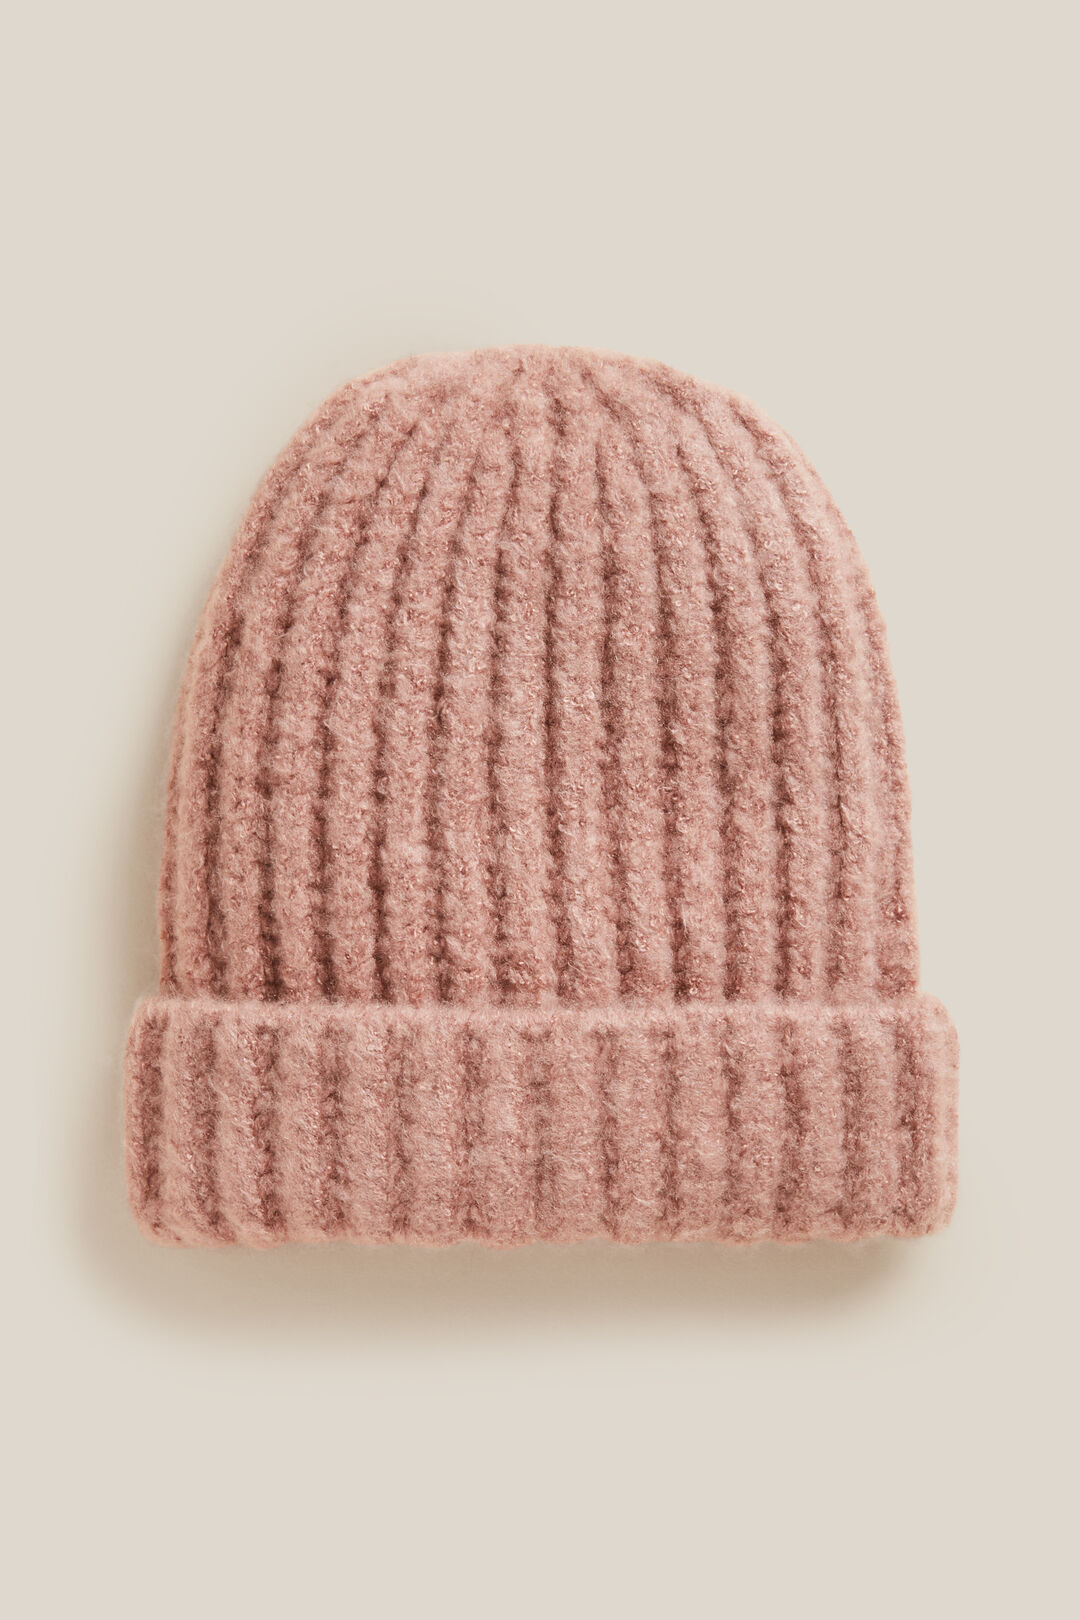 RIB KNITTED BEANIE  DUSTY PINK  hi-res